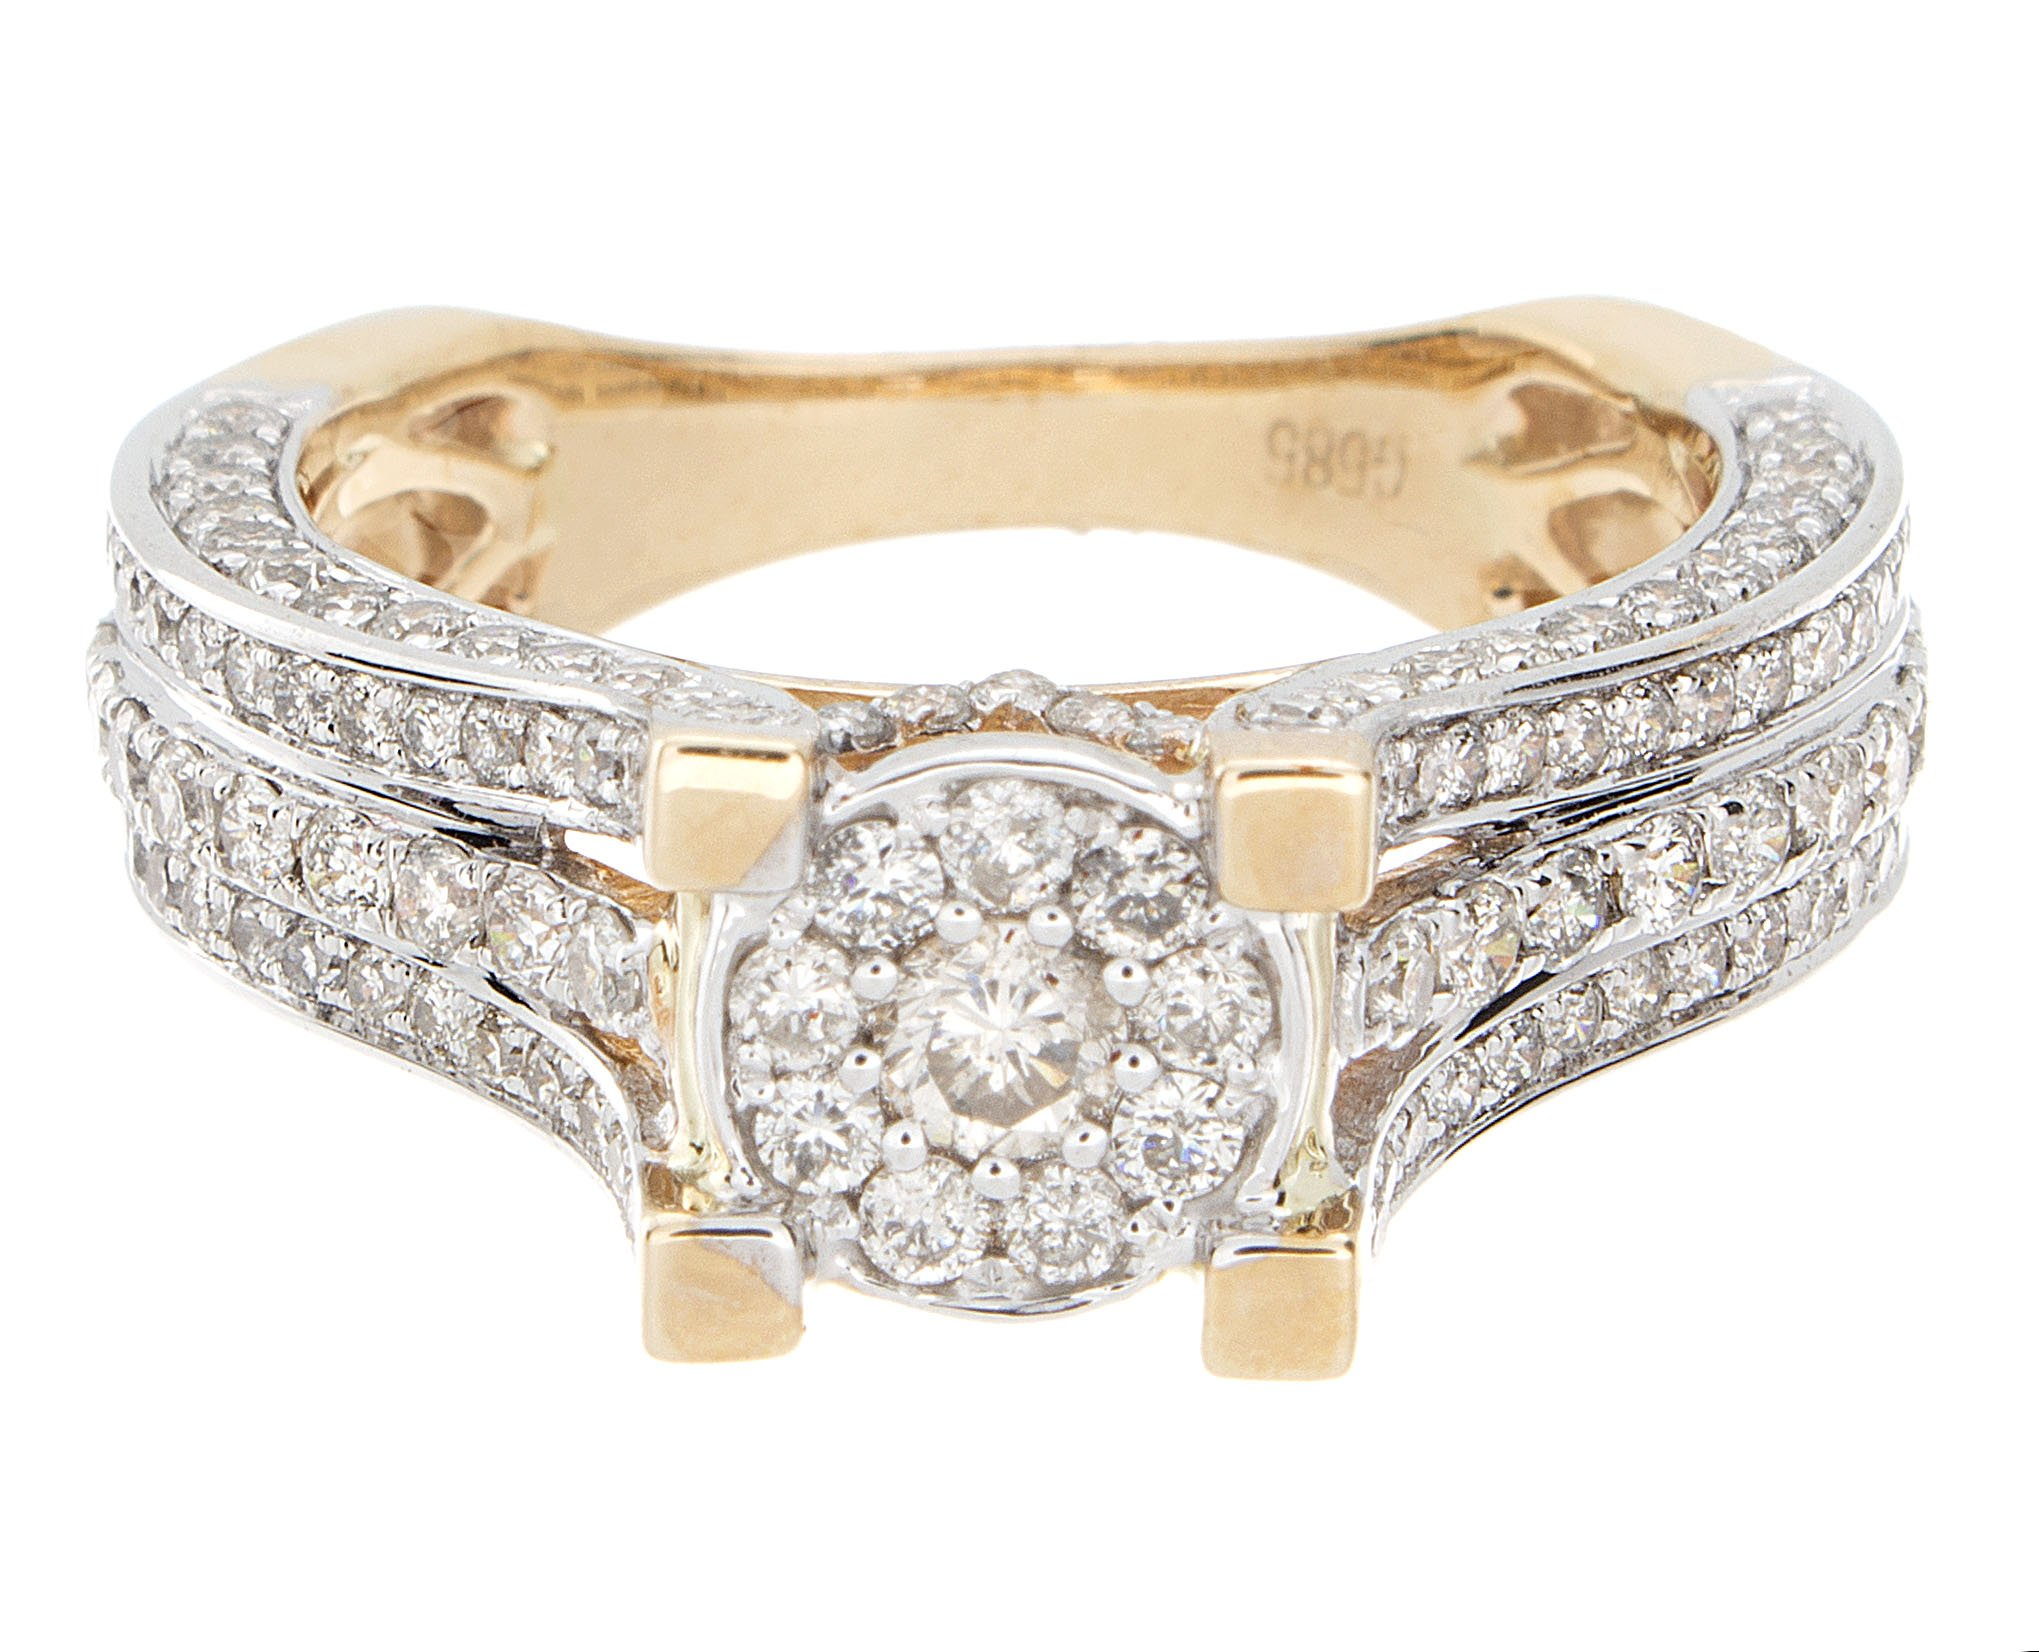 1.56ctw Excellent Cut Round Diamond (H-1 color, i1 - i2 clarity) in 14k Gold Fashion Ring